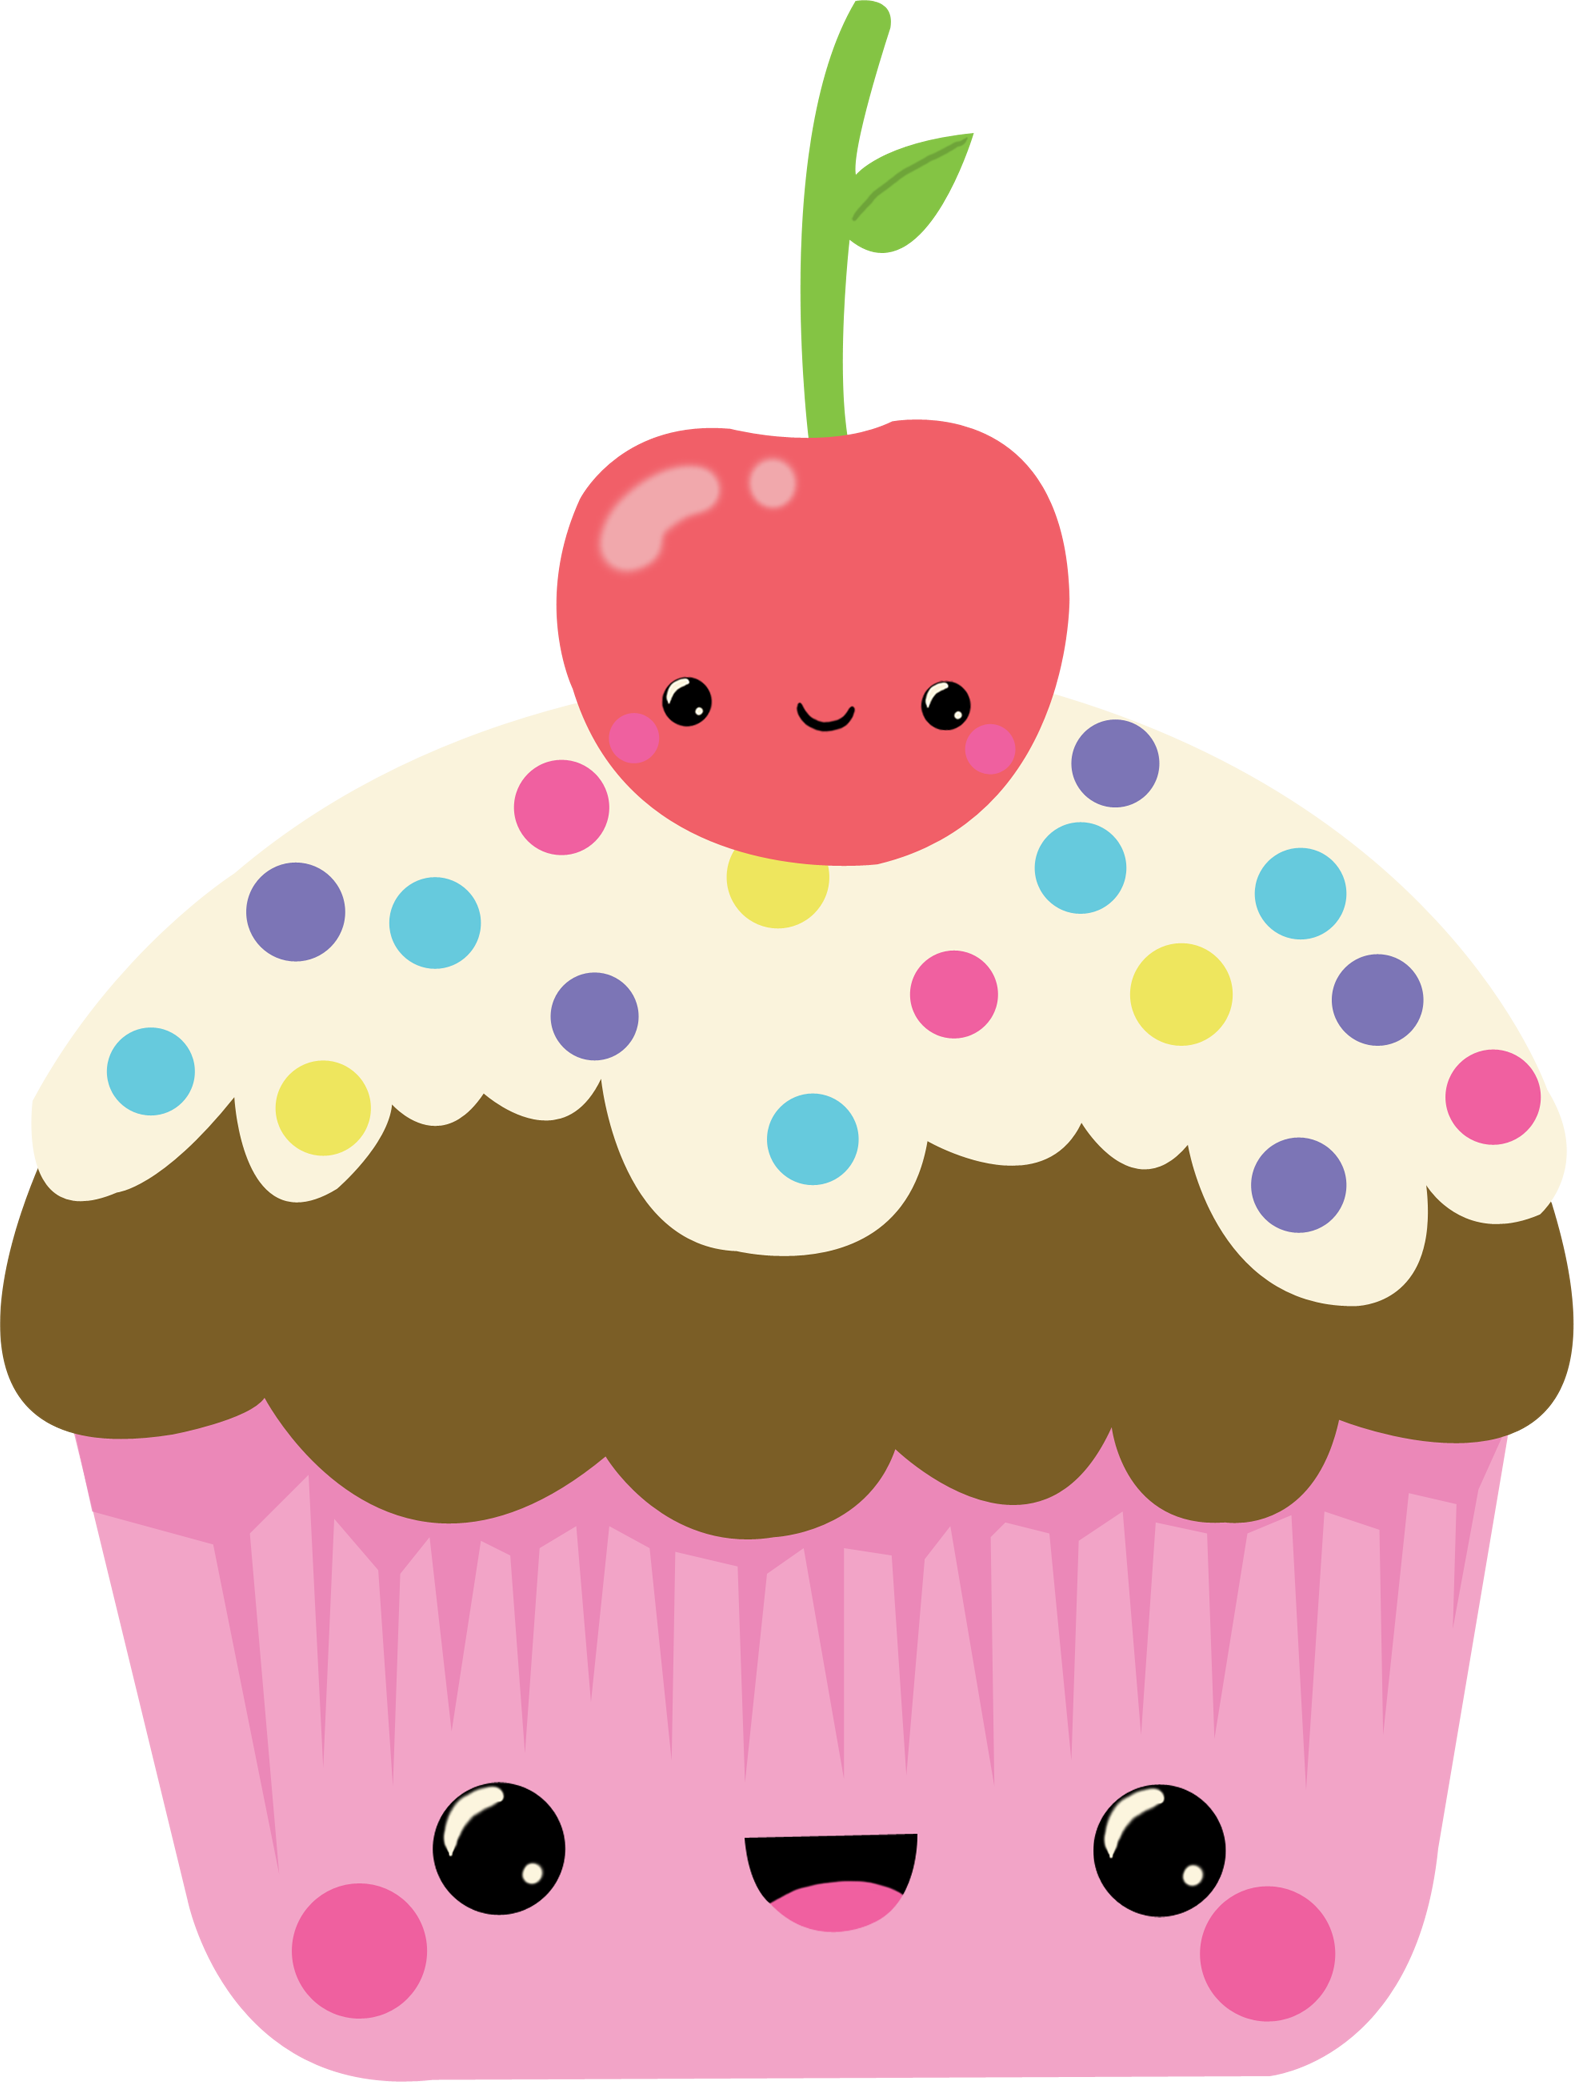 Cute cupcake png. Muffin transparent images pluspng